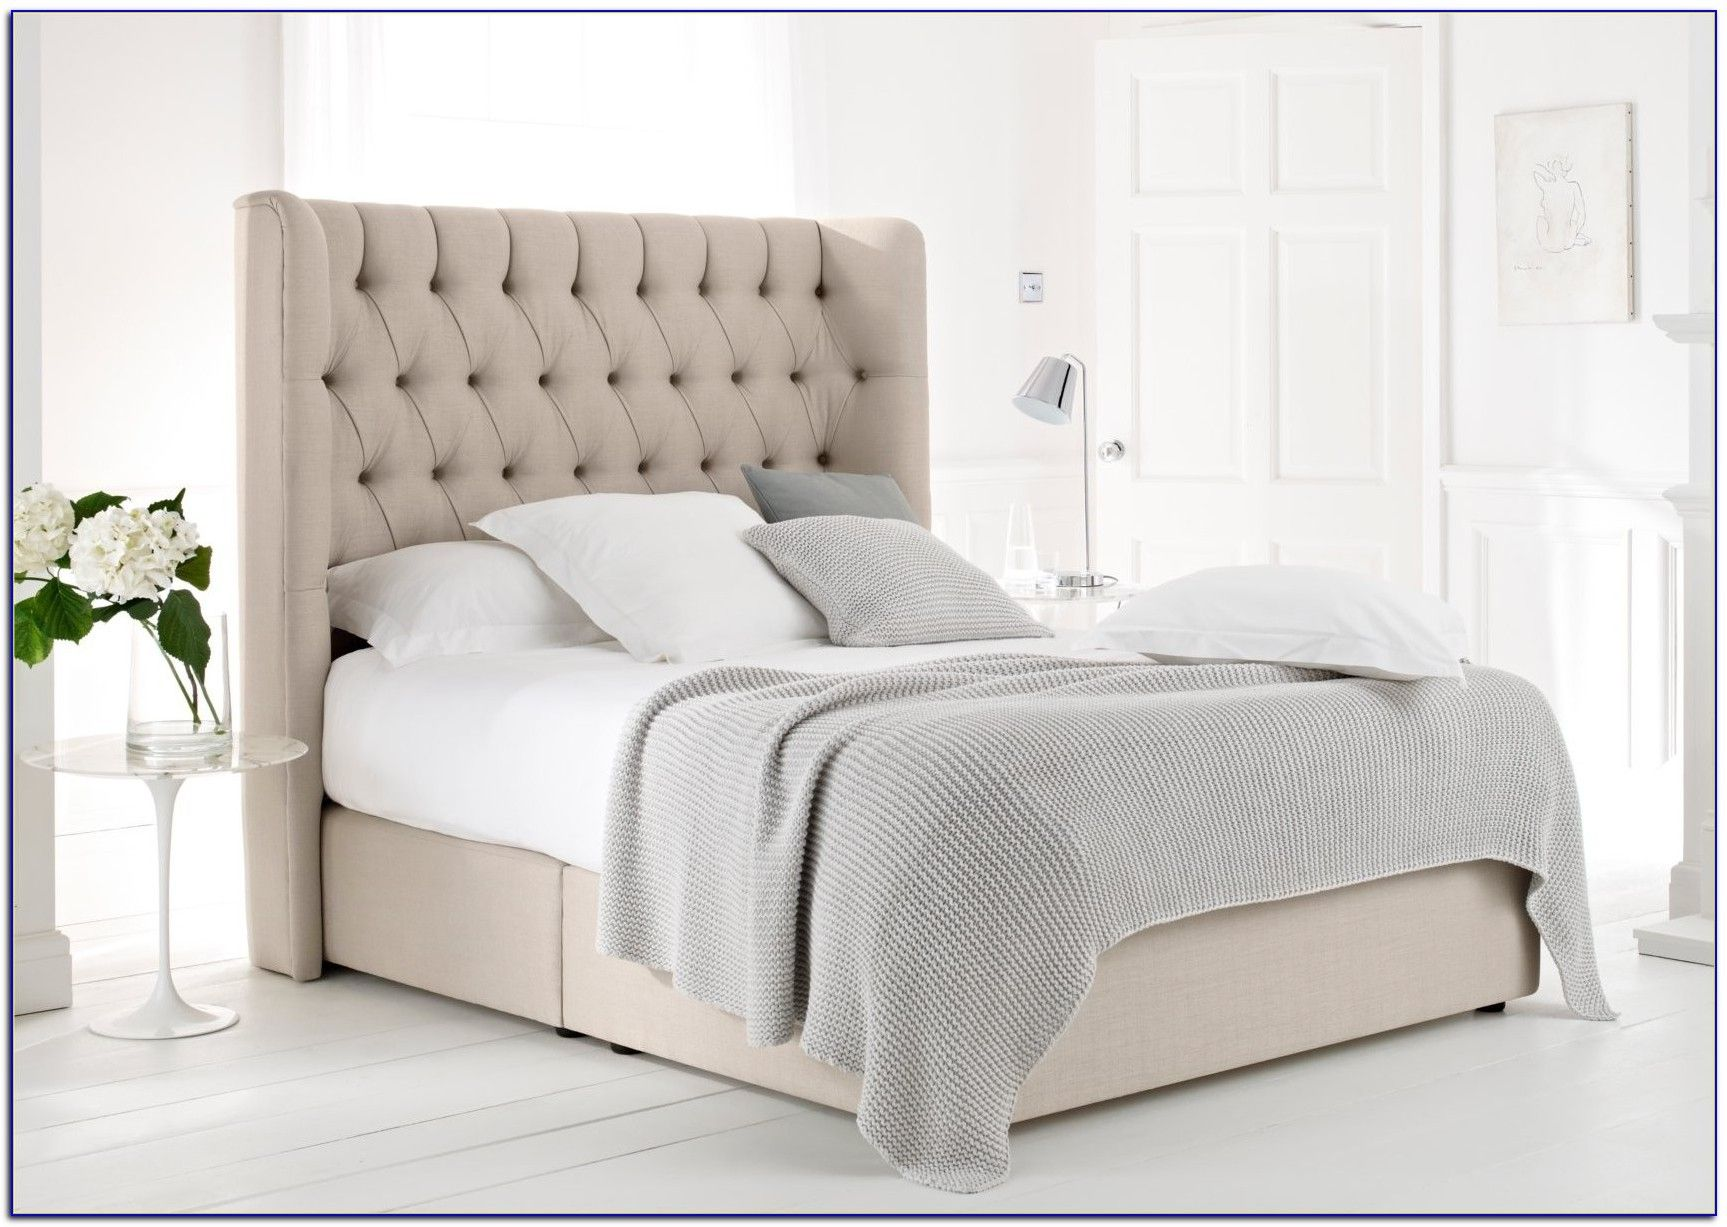 Upholstered Bed Frame And Headboard With Images King Size Bed